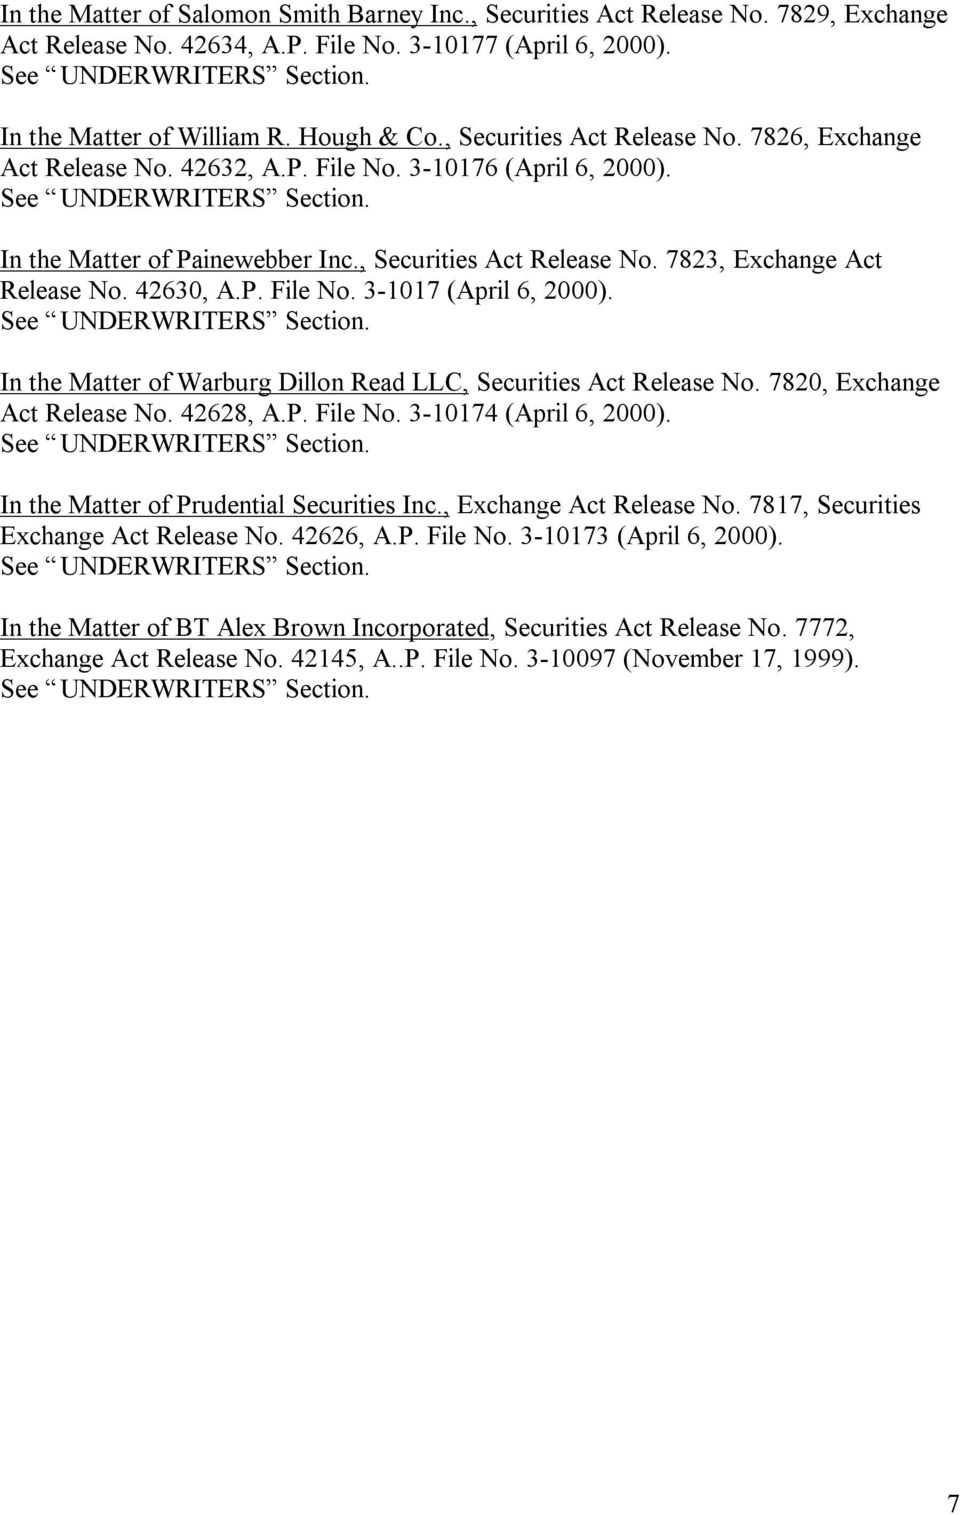 In the Matter of Painewebber Inc., Securities Act Release No. 7823, Exchange Act Release No. 42630, A.P. File No. 3-1017 (April 6, 2000). See UNDERWRITERS Section.